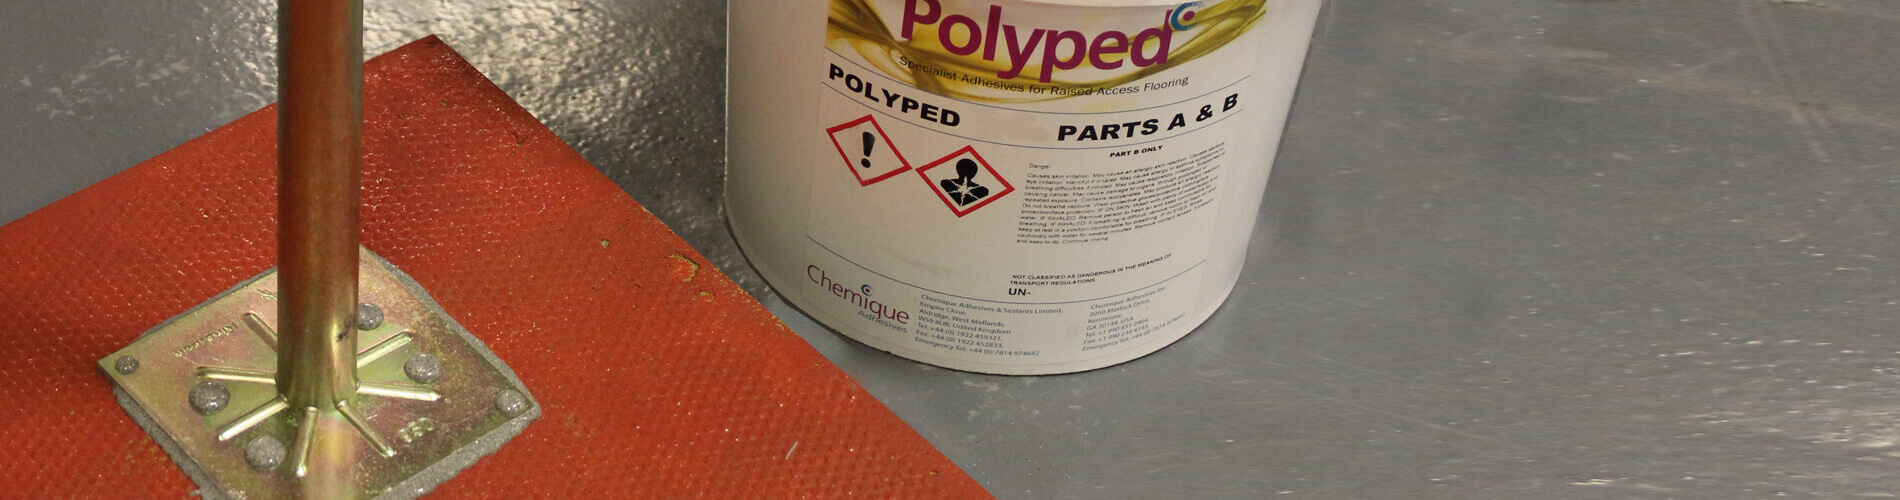 Polyped2 HF Banner